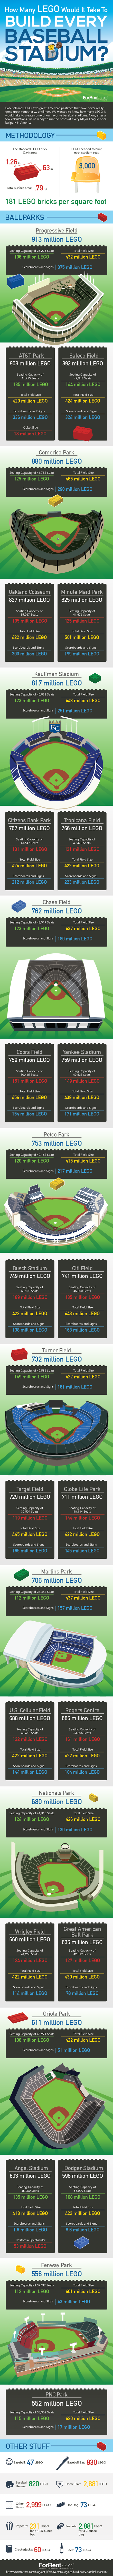 Construction Estimates for Building Your Own Baseball Stadium – the LEGO Way - Infographic